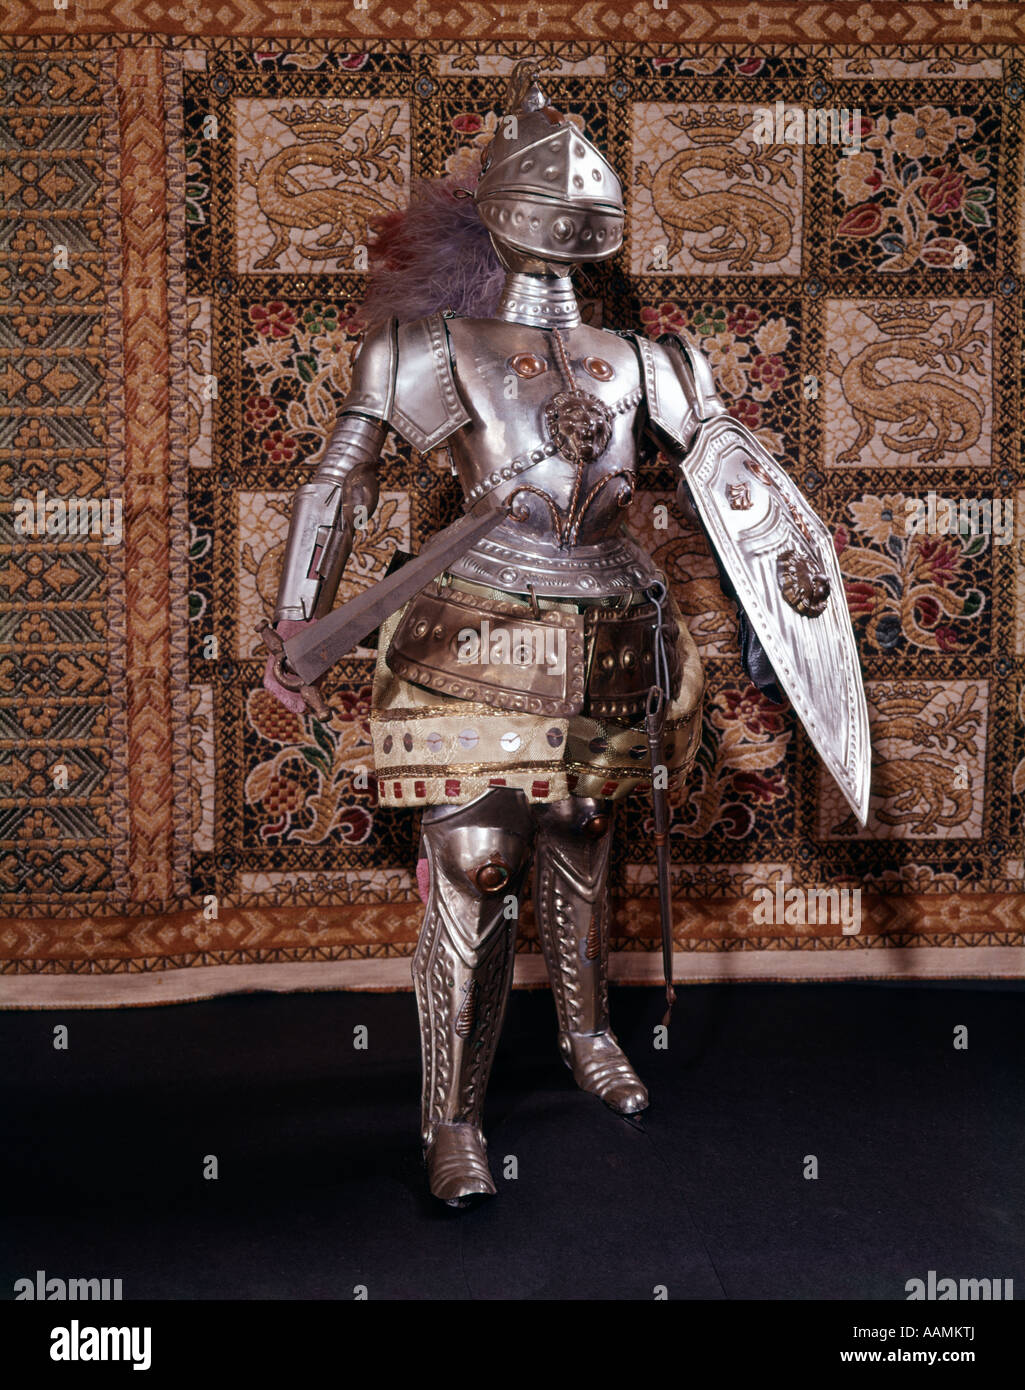 FULL LENGTH SUIT OF ARMOR MEDIEVAL SWORD HELMET SHIELD METAL